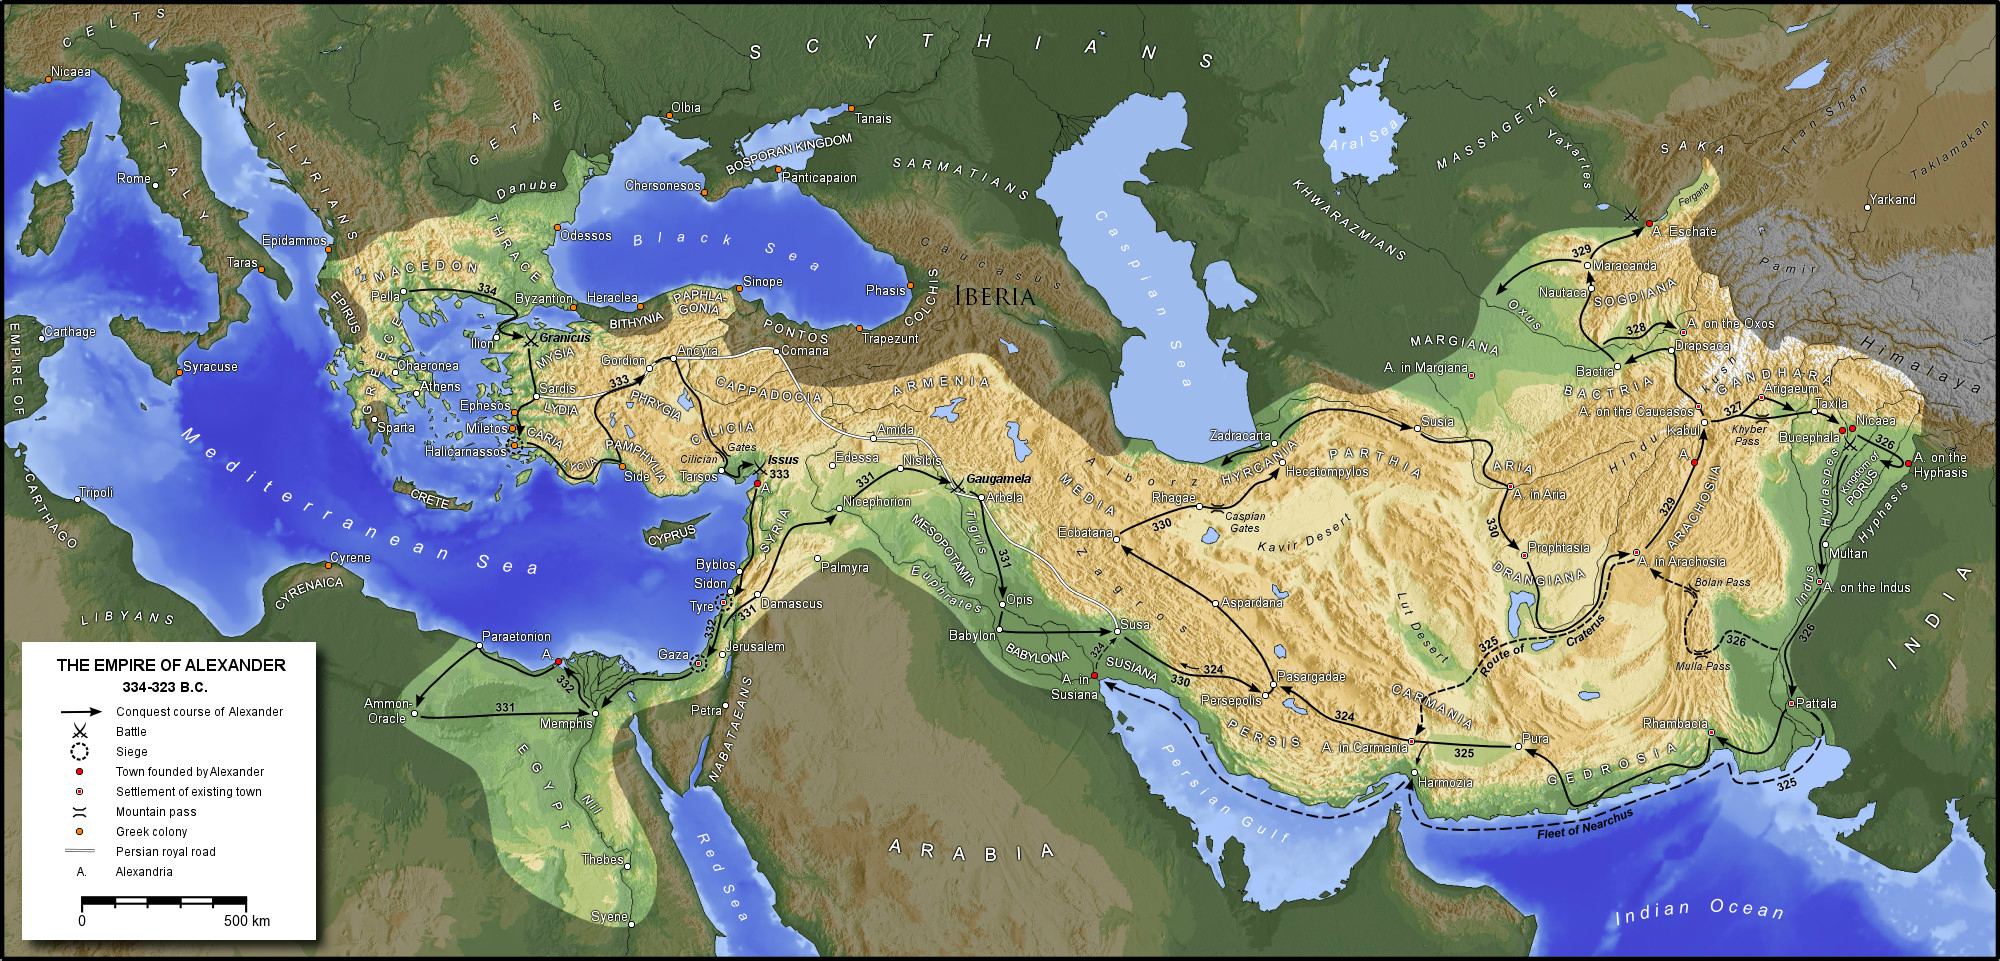 alexander the great empire boundaries in dating